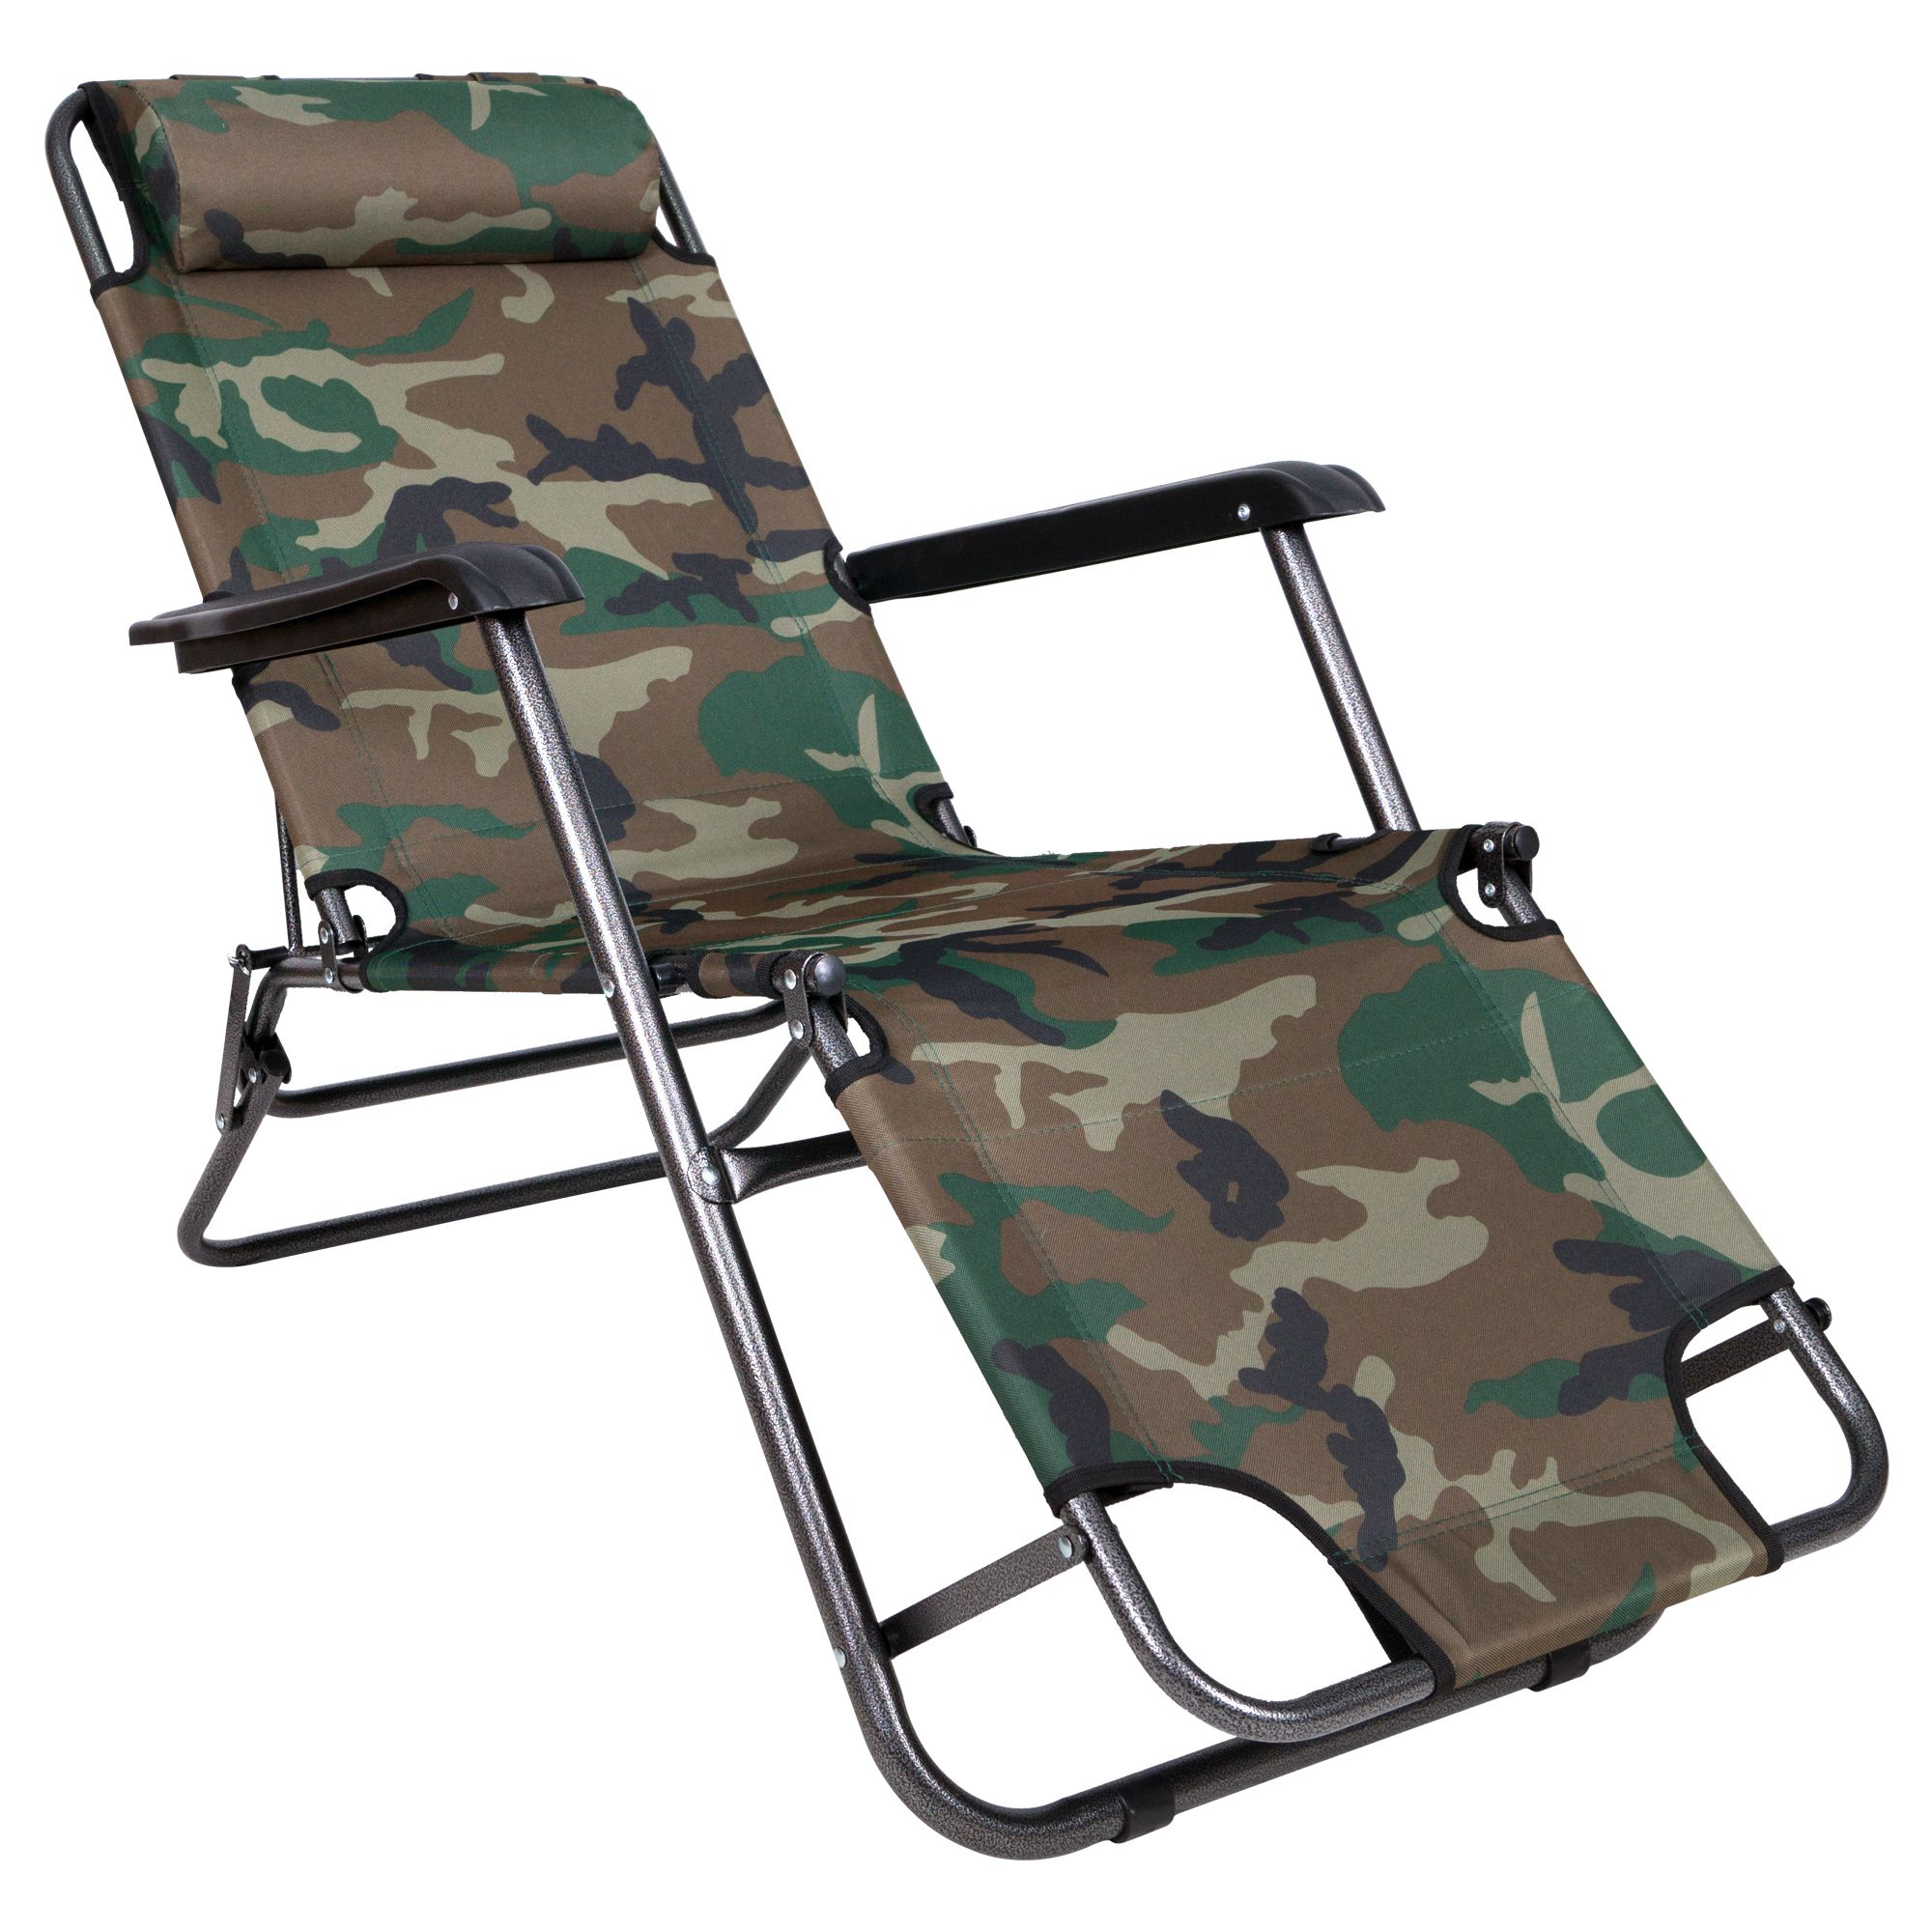 Story Home Folding Recliner Beach Lounge Garden Outdoor Portable Chair Camo Buy Story Home Folding Recliner Beach Lounge Garden Outdoor Portable Chair Camo Online At Best Prices In India On Snapdeal